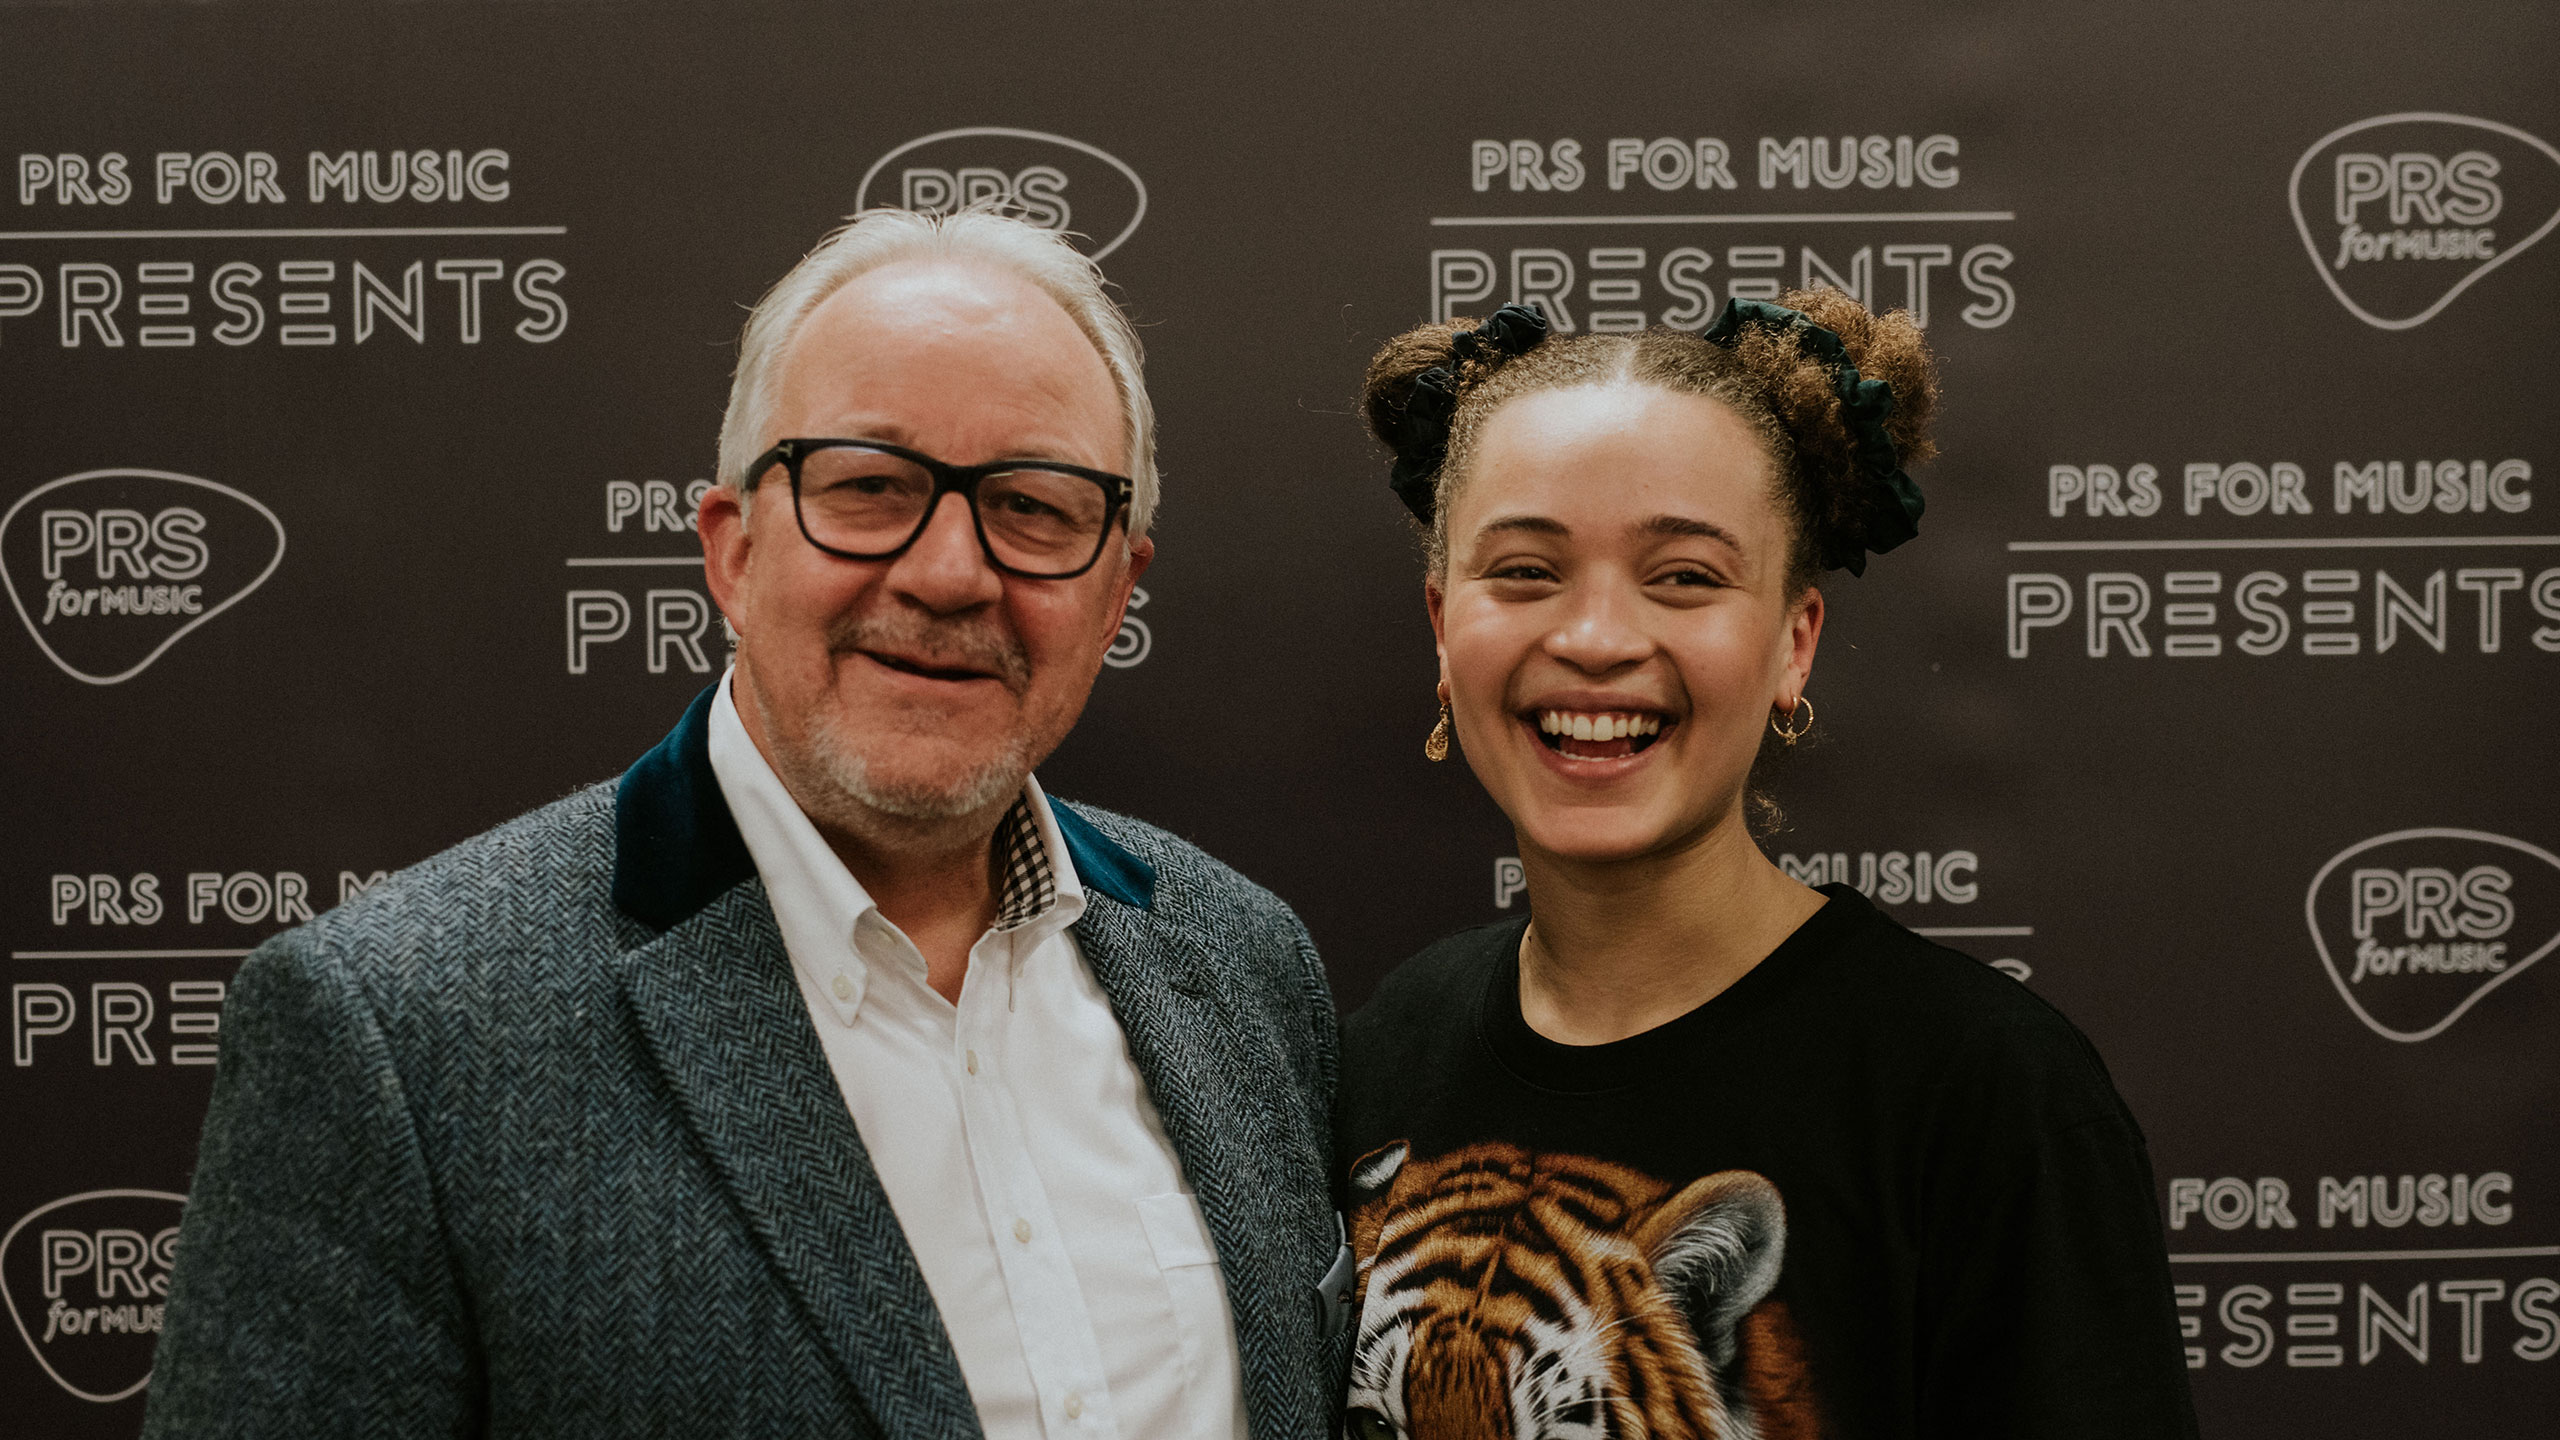 Connie Constance with PRS for Music chairman Nigel Elderton